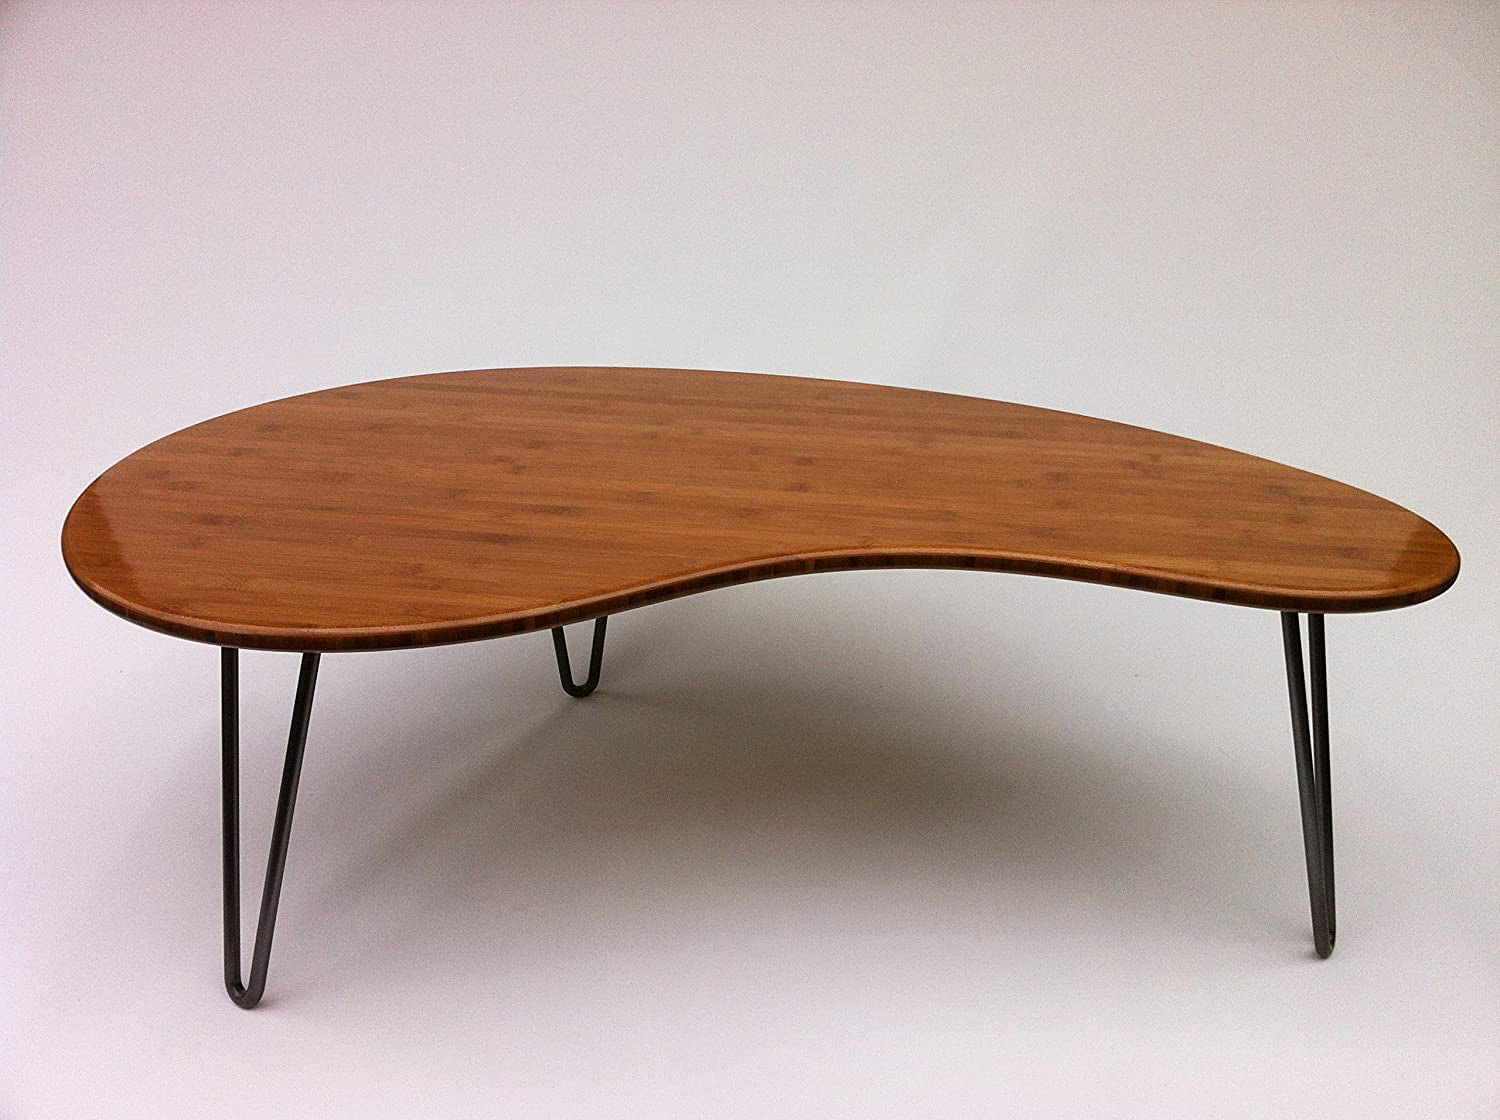 Amazon mid century modern coffee or cocktail table kidney amazon mid century modern coffee or cocktail table kidney bean shaped atomic era biomorphic boomerang design in caramelized bamboo kitchen geotapseo Choice Image